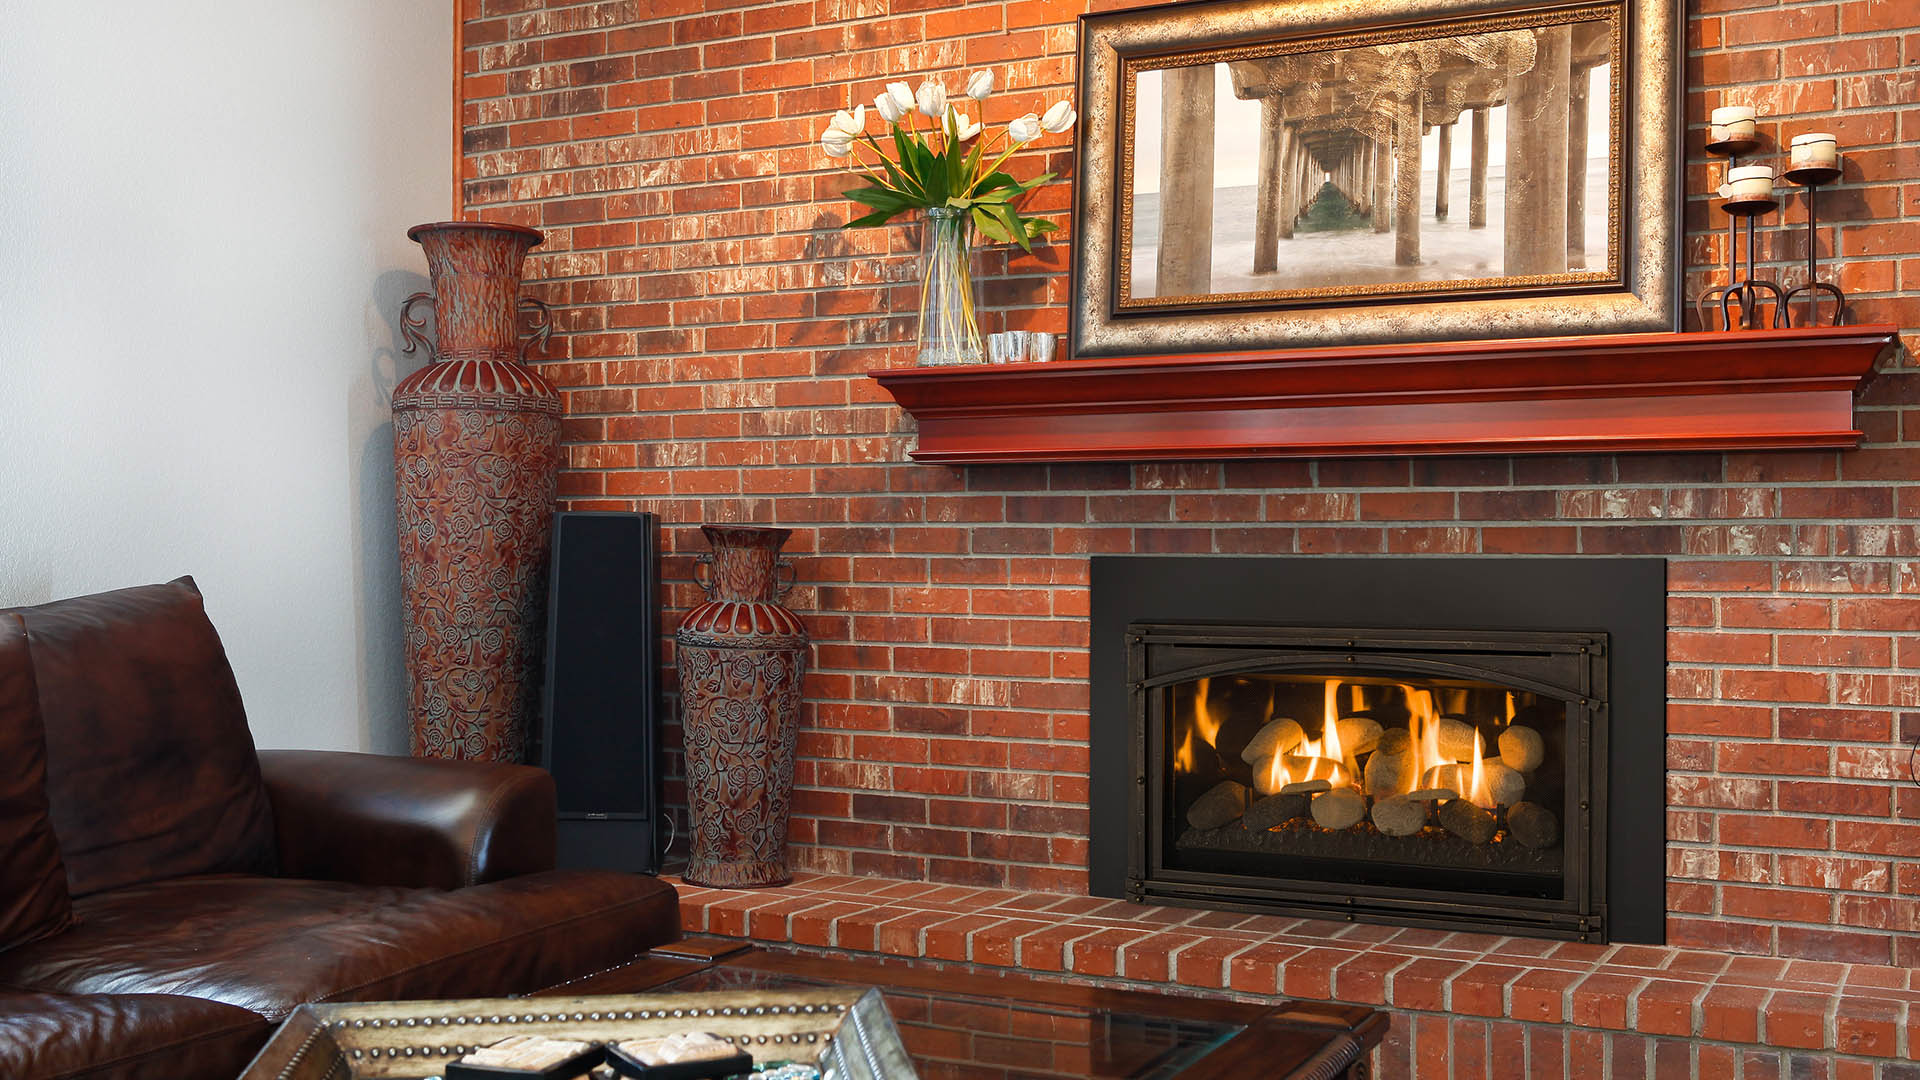 Fireplace inserts eugene springfield ambassador fireplaces fireplace inserts can transform an existing masonry fireplace into an updated energy efficient heating source for your home while an old open fireplace solutioingenieria Image collections